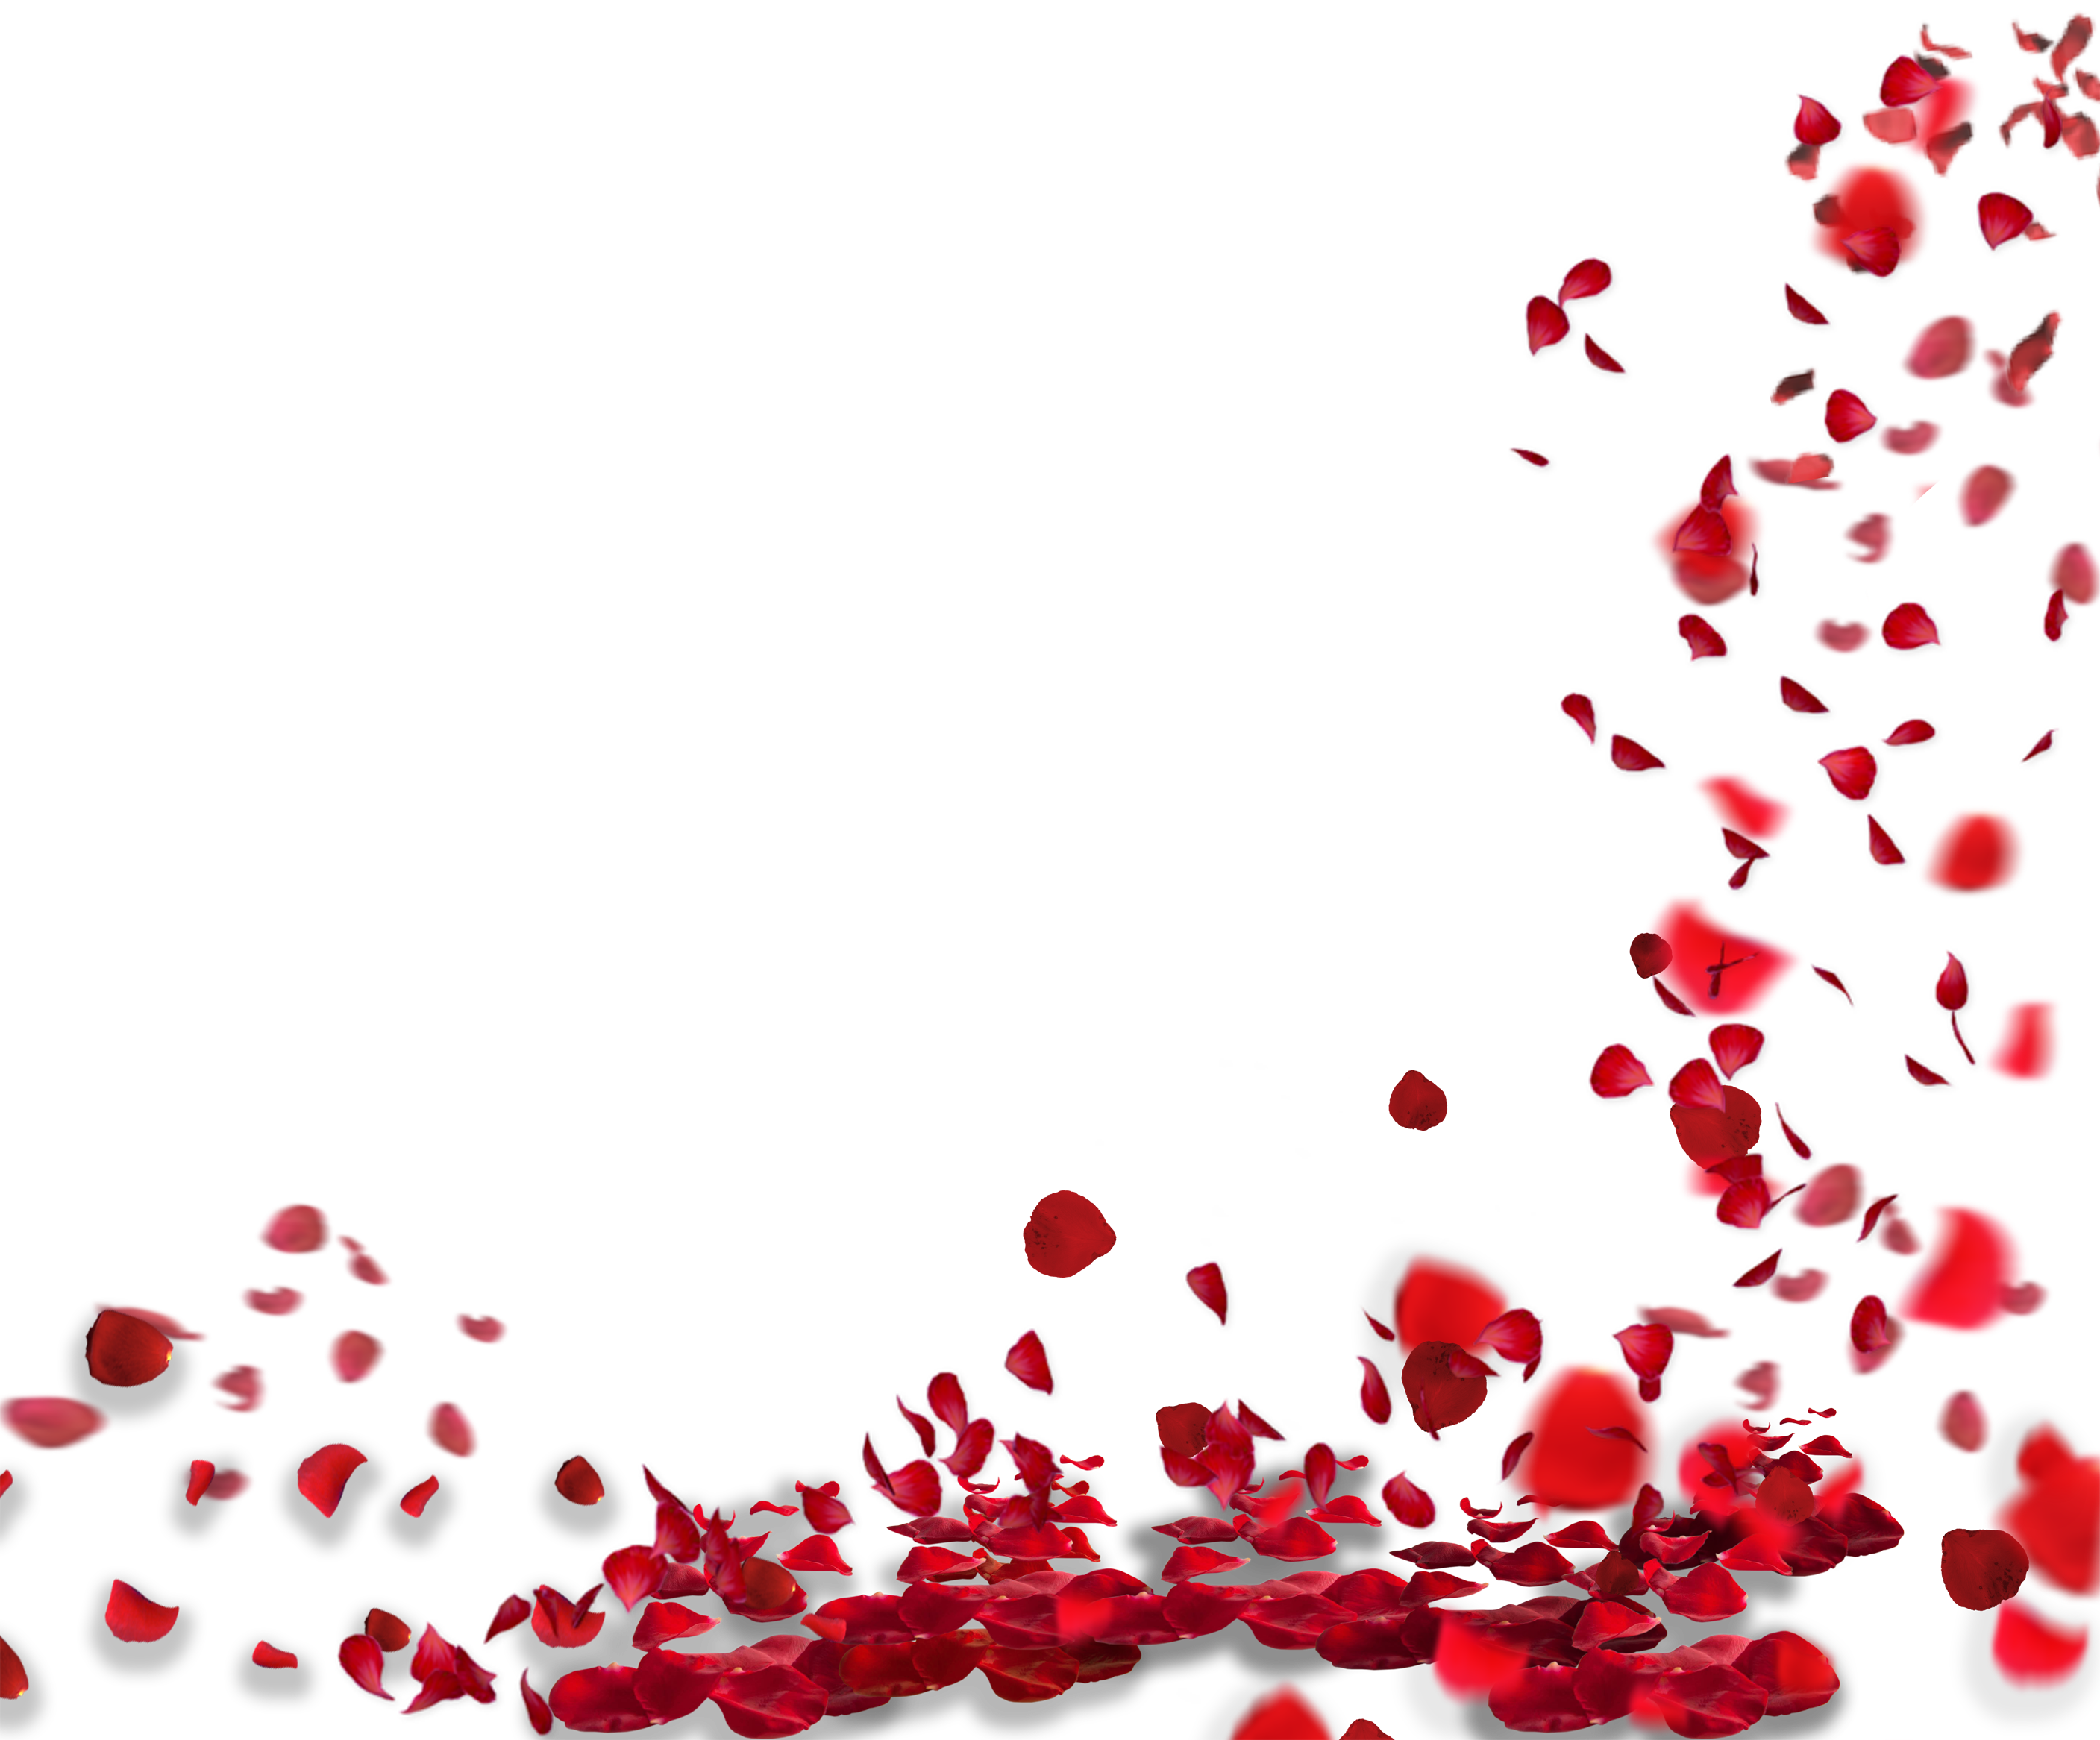 Rose Petals Png images HD quality free download.